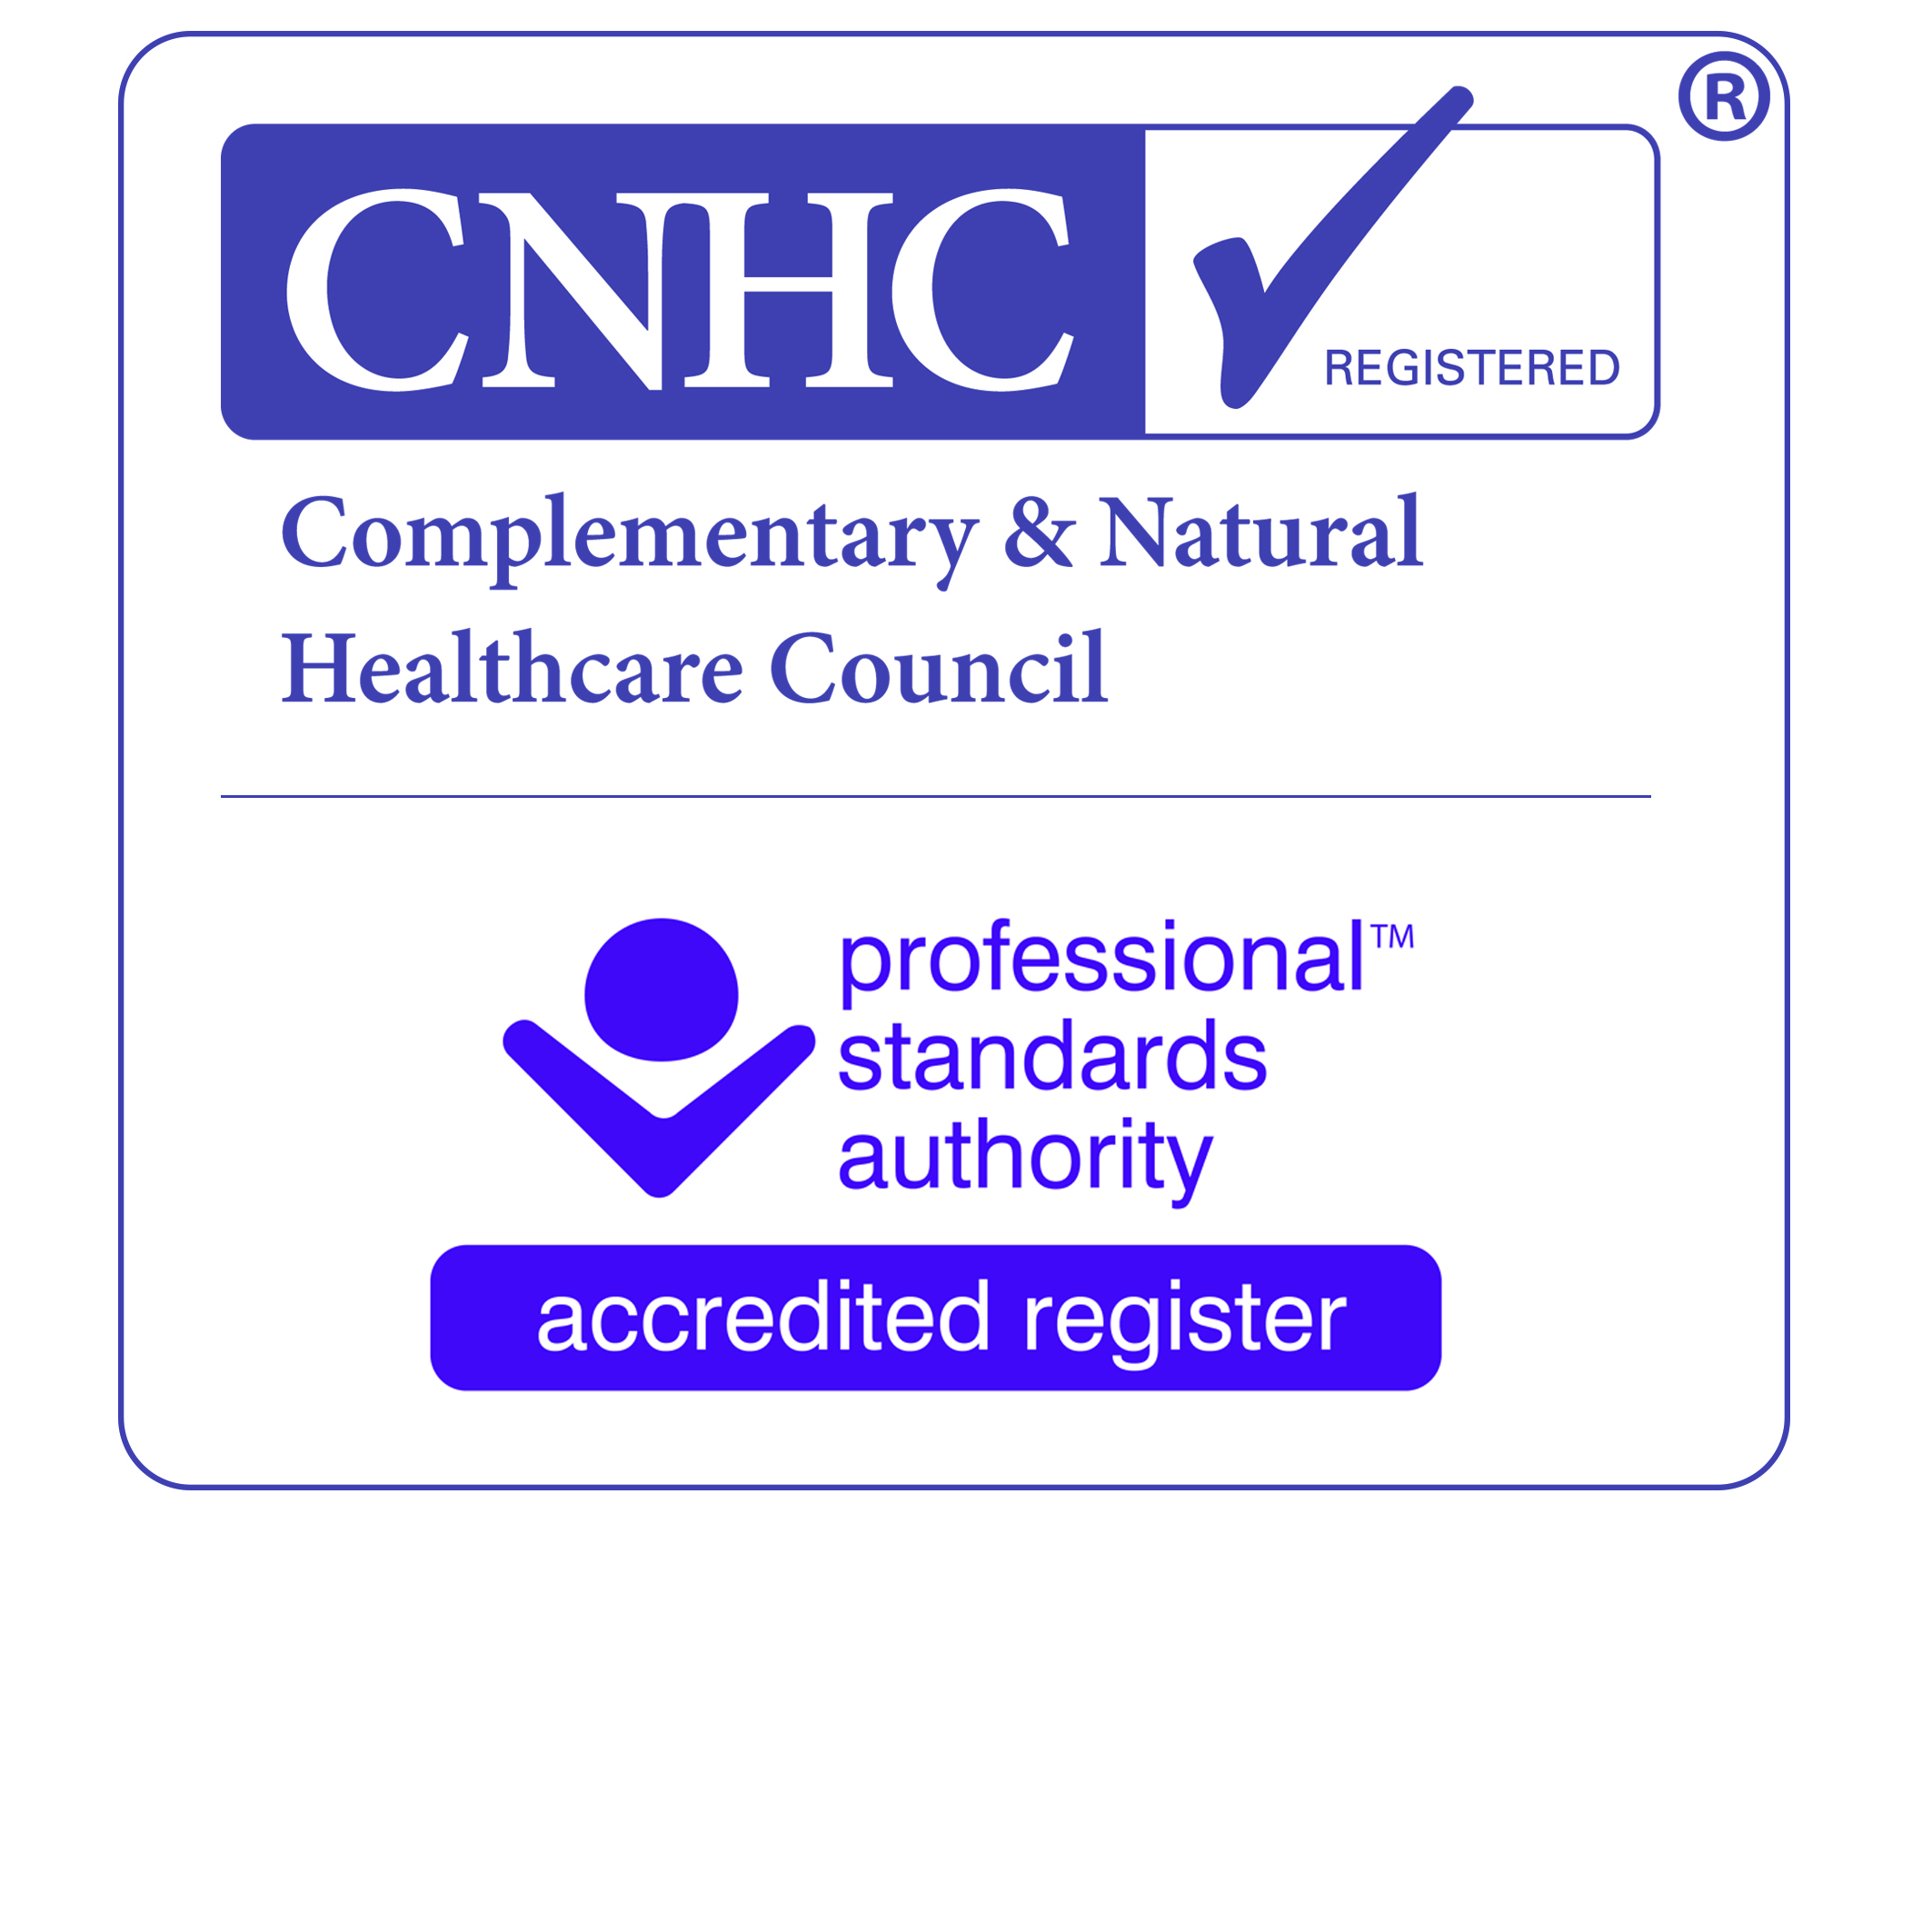 Complenemtary & Natural Healthcare Council.